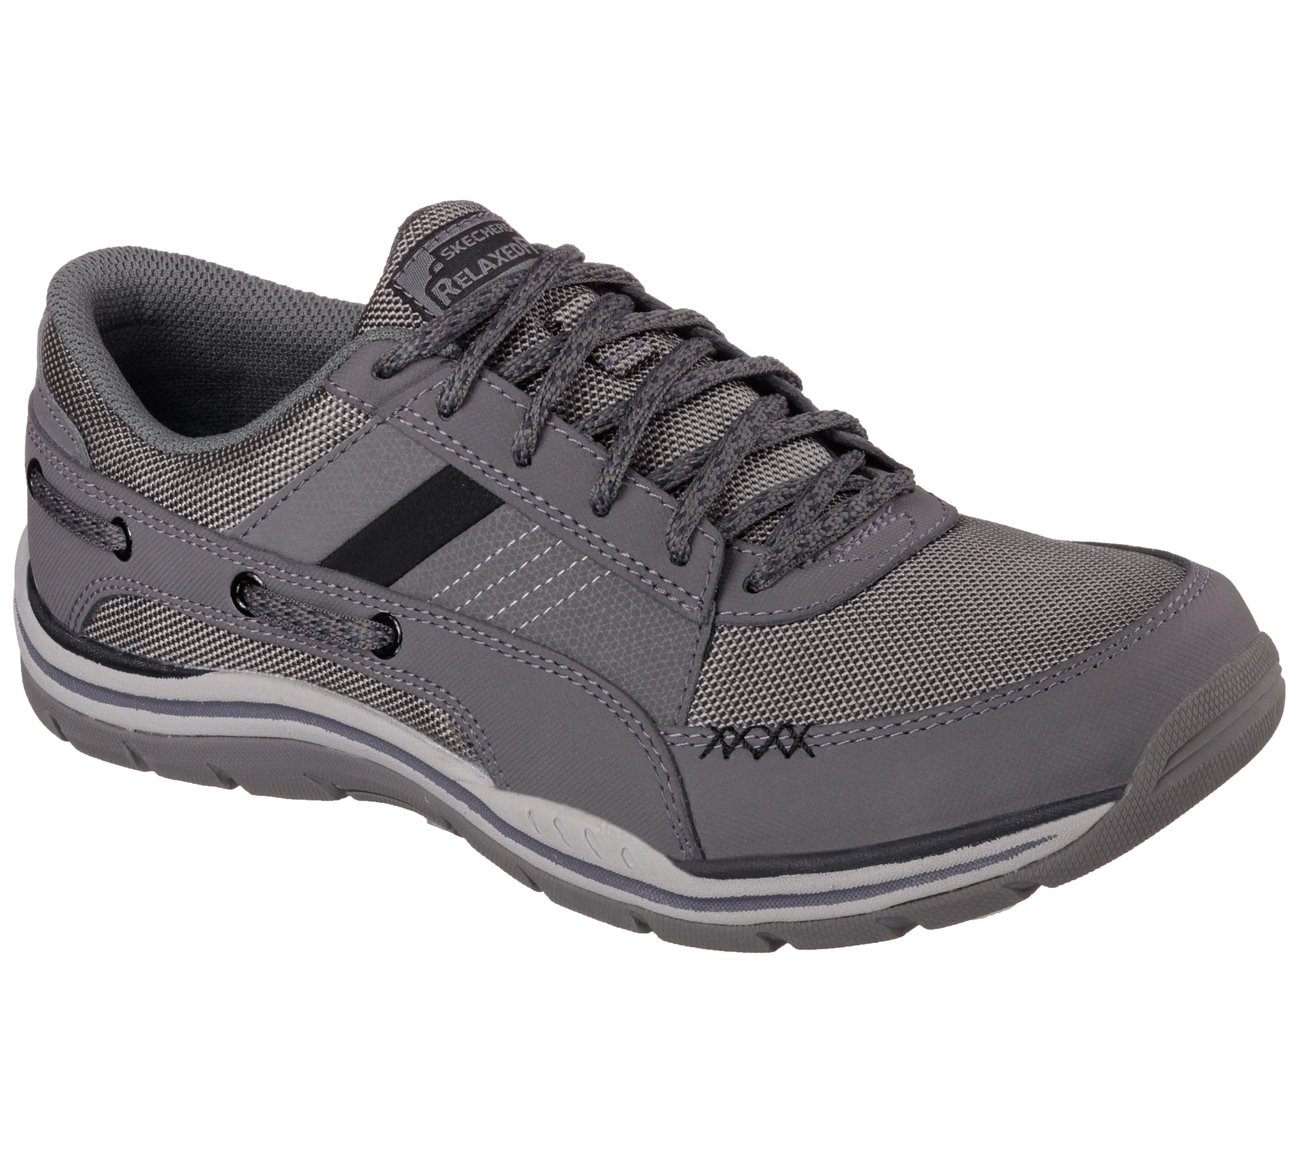 Skechers Men's Relaxed Fit Expected Bolivar Charcoal US 7.5 M SKECHERS USA Inc